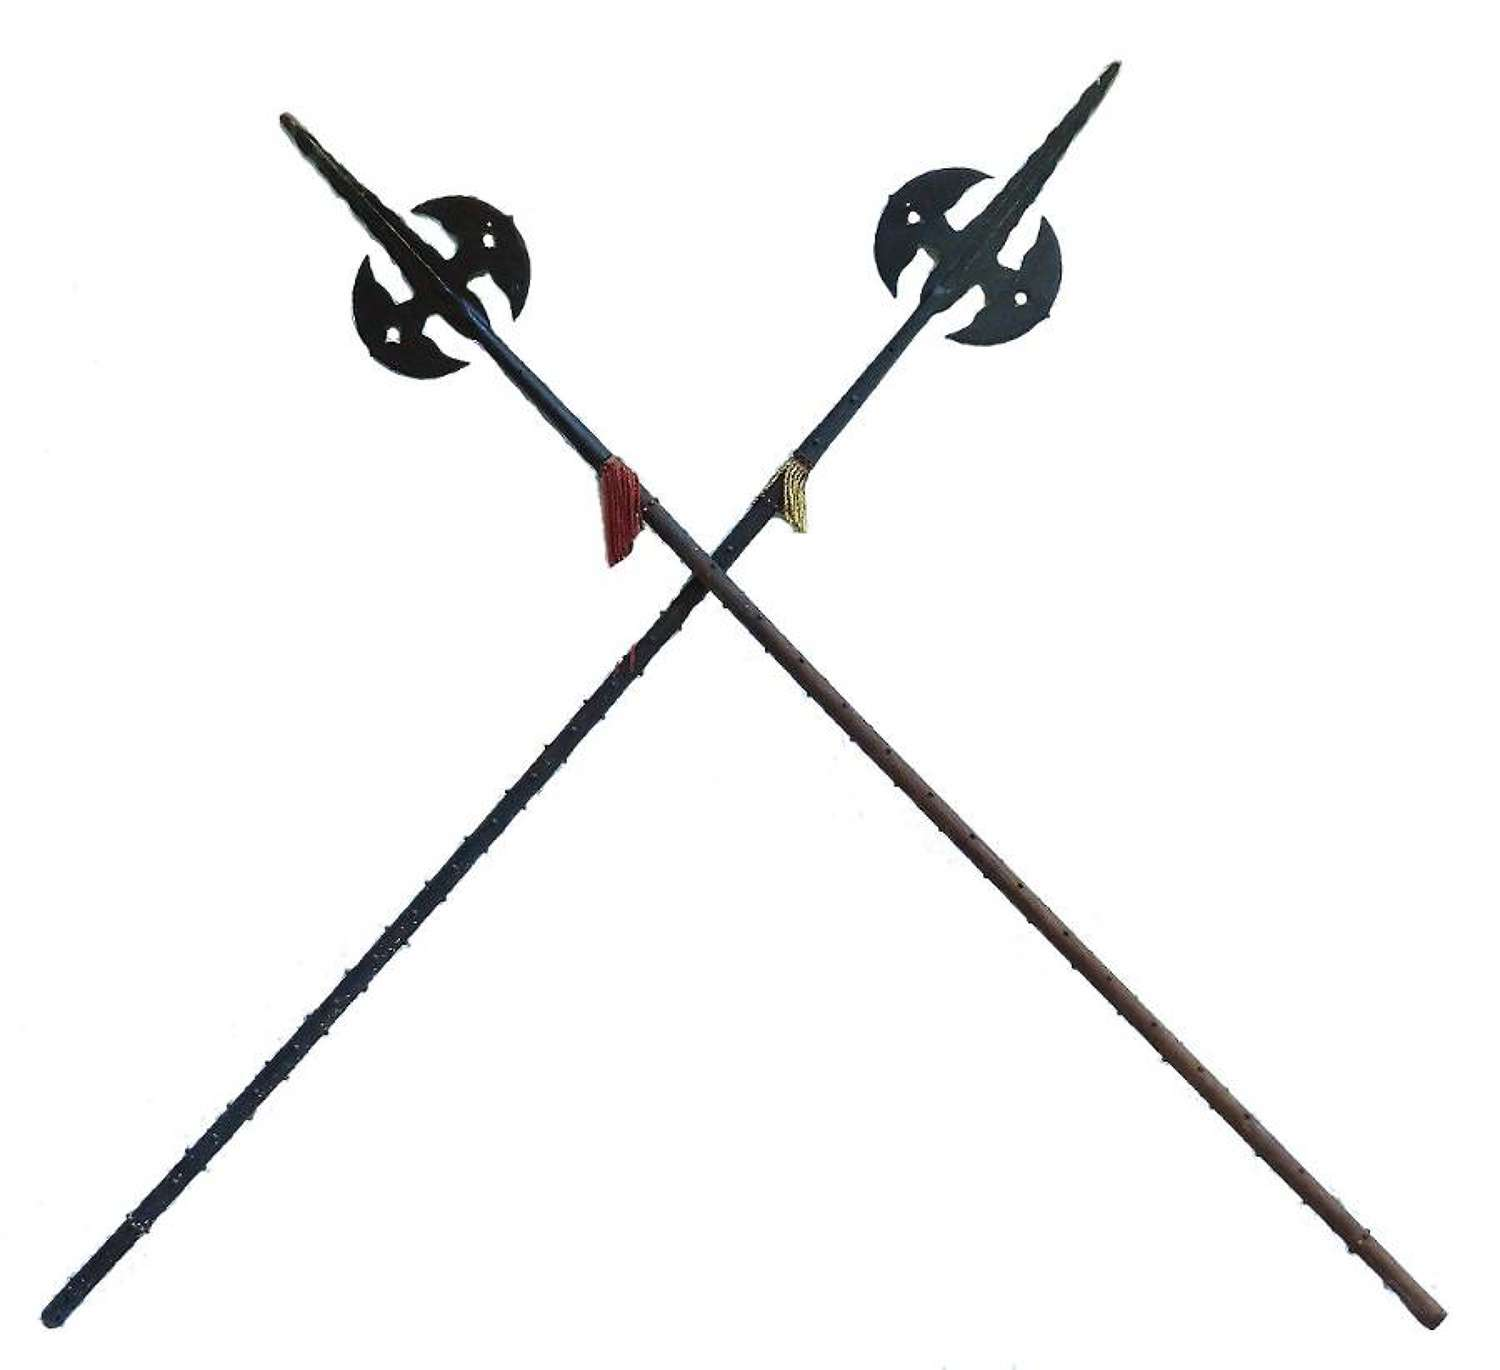 Pair of Antique Halberds Spears English Medieval Renaissance Wall Deco